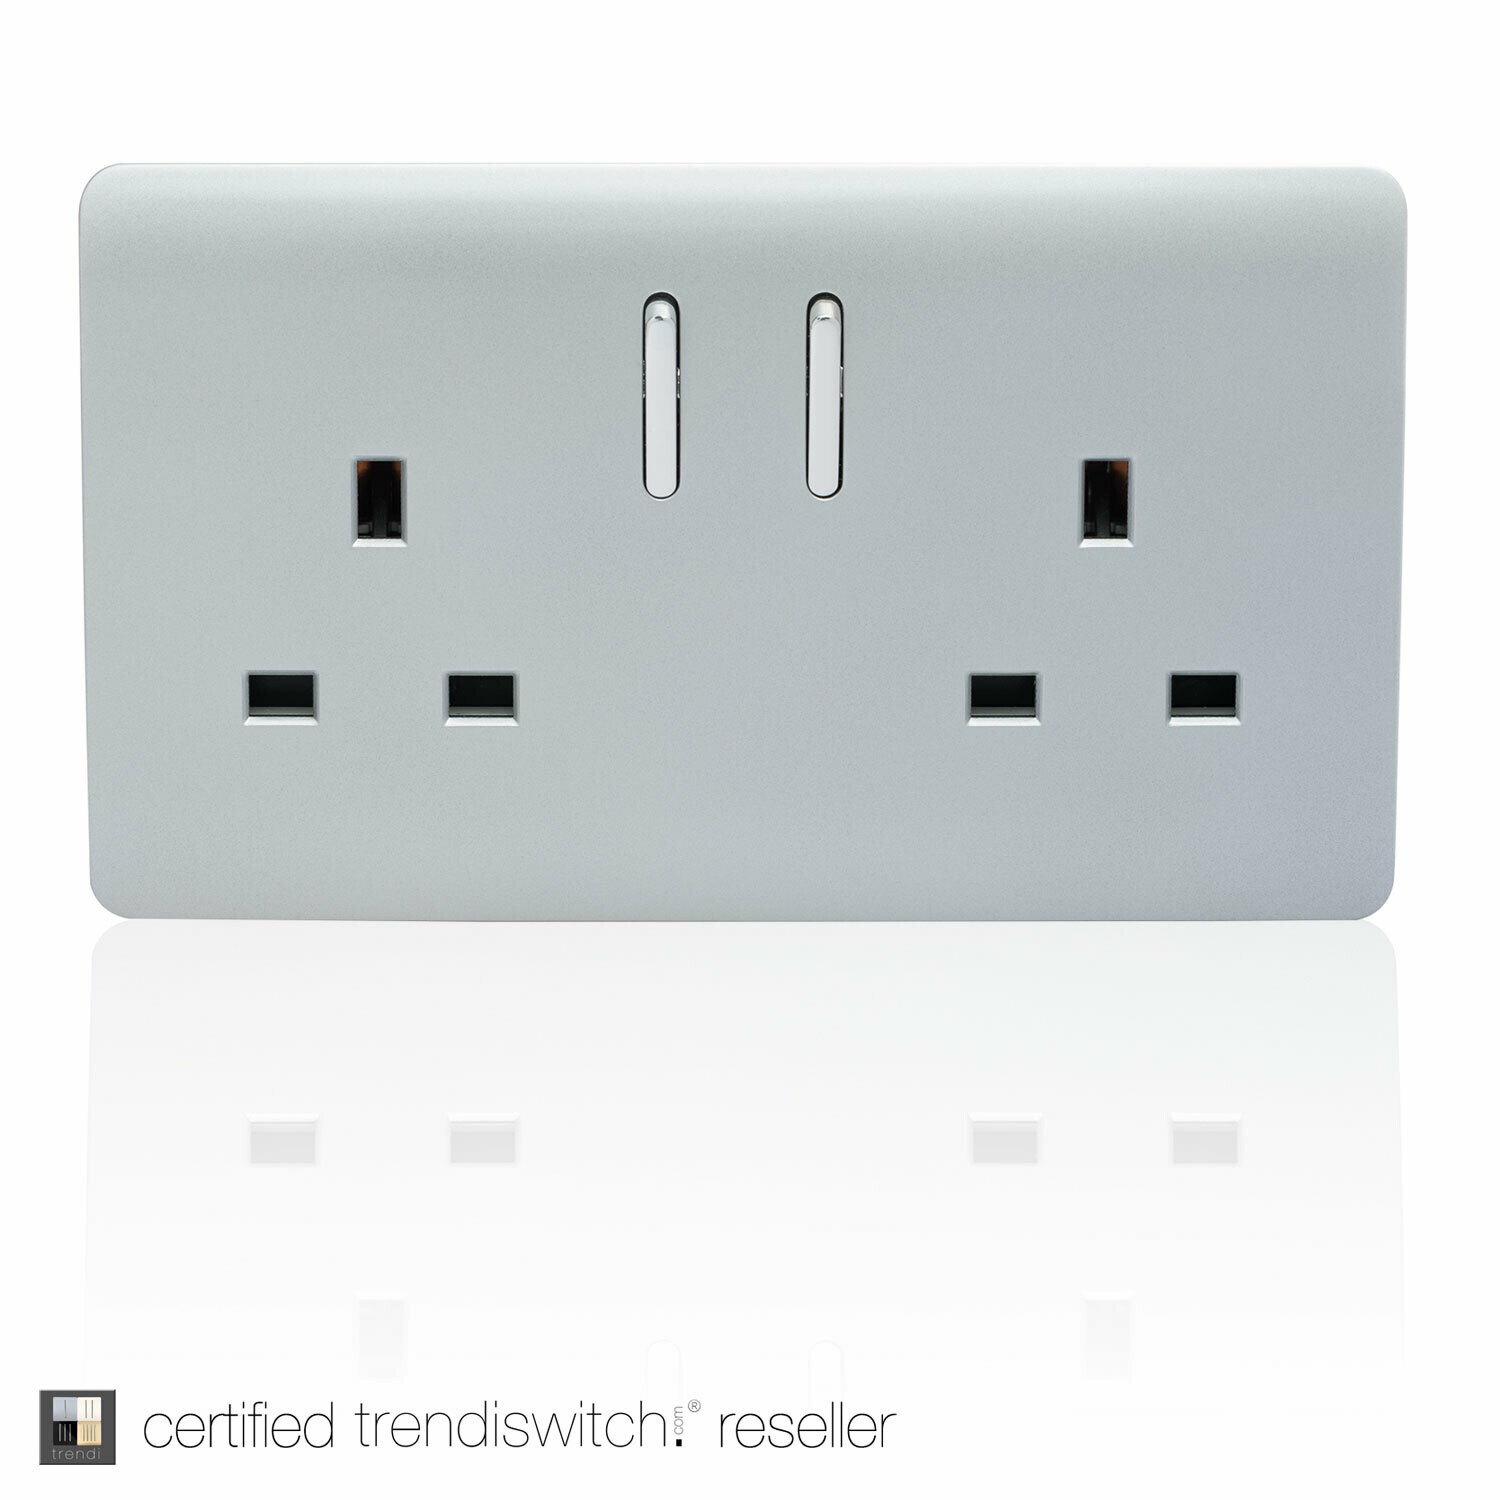 Trendi, Artistic Modern 2 Gang 13Amp Short Switched Double  Socket Silver Finish, BRITISH MADE, 5yrs warranty